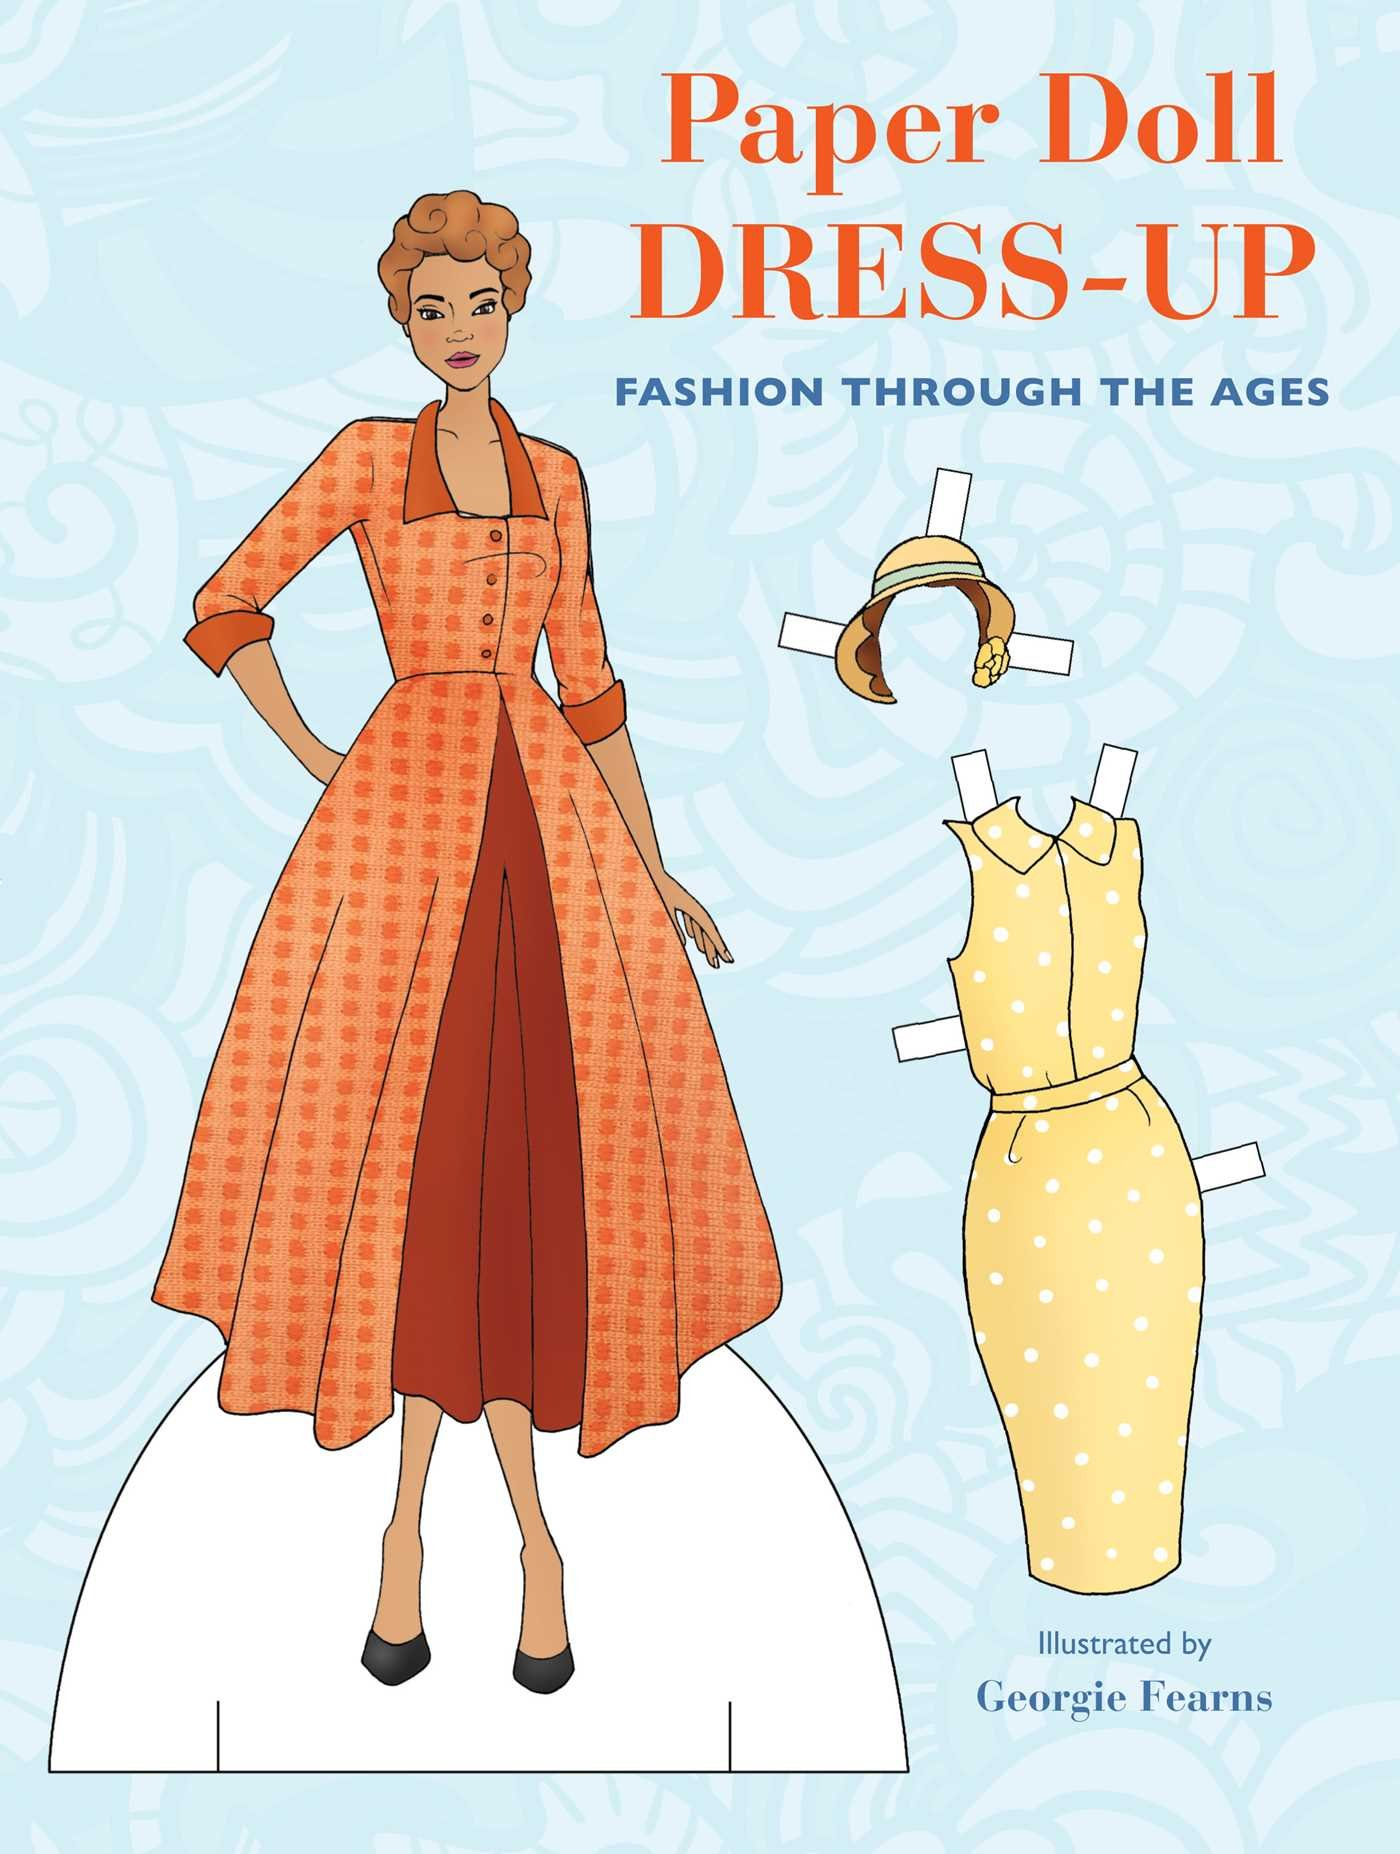 Tom tierney colonial fashions paper dolls - Amazon Com Paper Doll Dress Up Fashion Through The Ages 9781908862730 Georgie Fearns Books